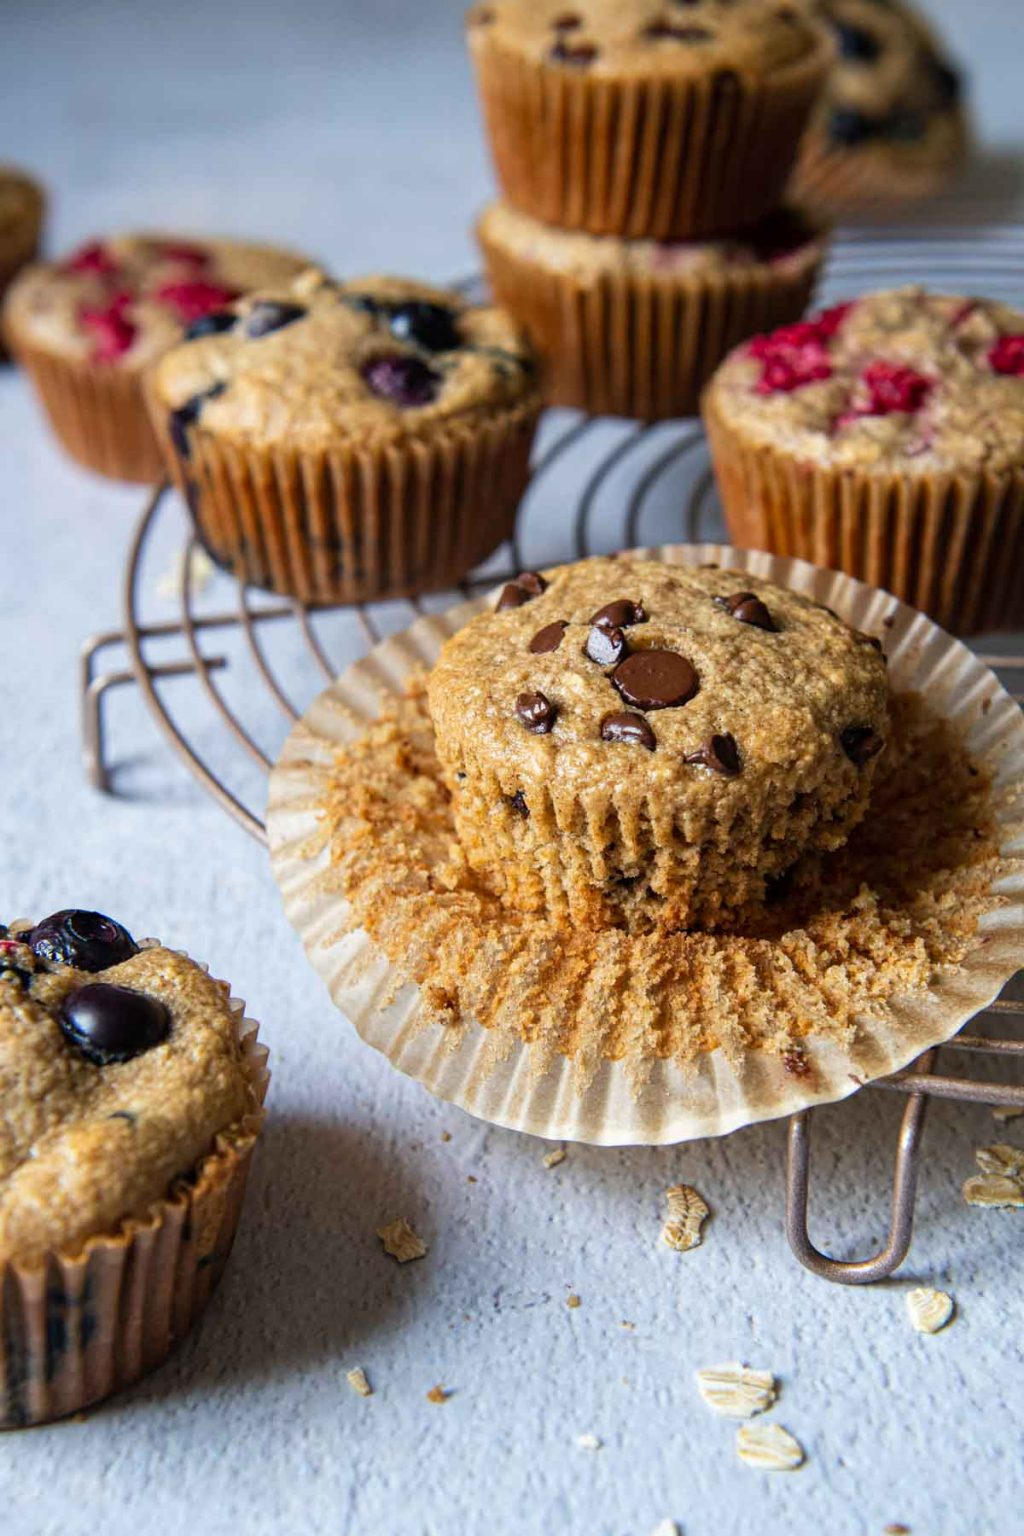 an unwrapped chocolate chip oat flour muffin on a cooling rack